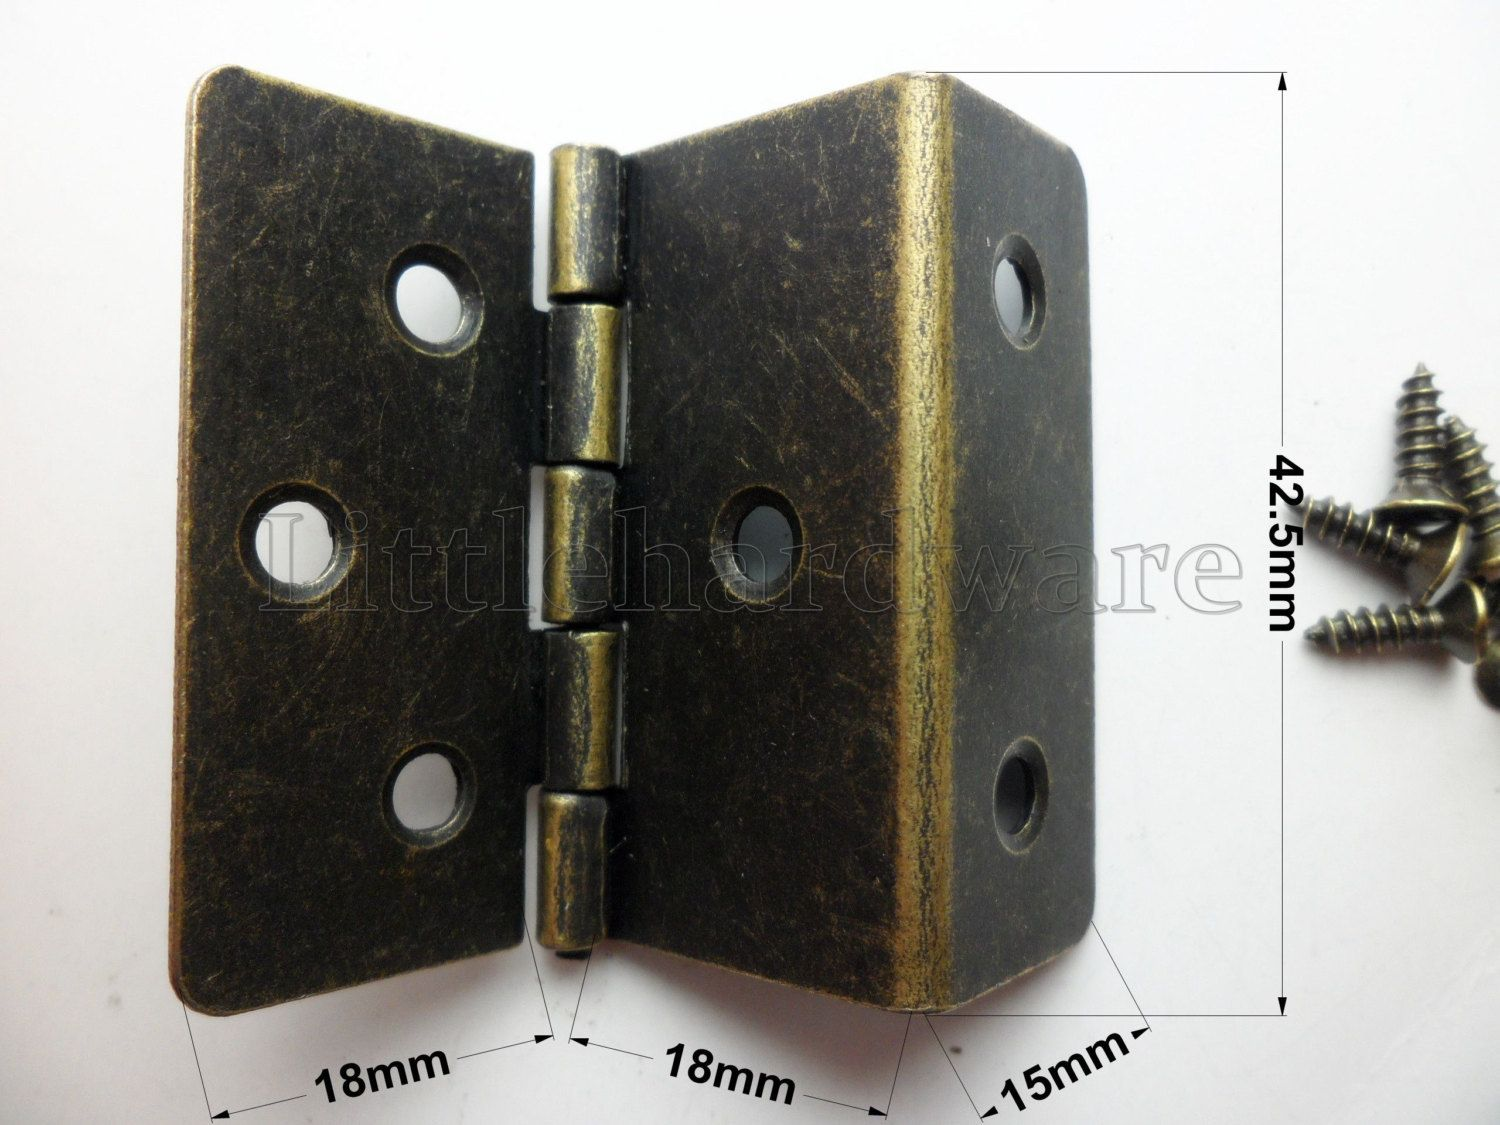 10 Pcs Chinese Classical Antique Brass Color 42 5mm Height Hinges Double Hinges Shutter Hinges Cabinet Hardware Vh0040 Antique Brass Brass Color Shutter Hinges